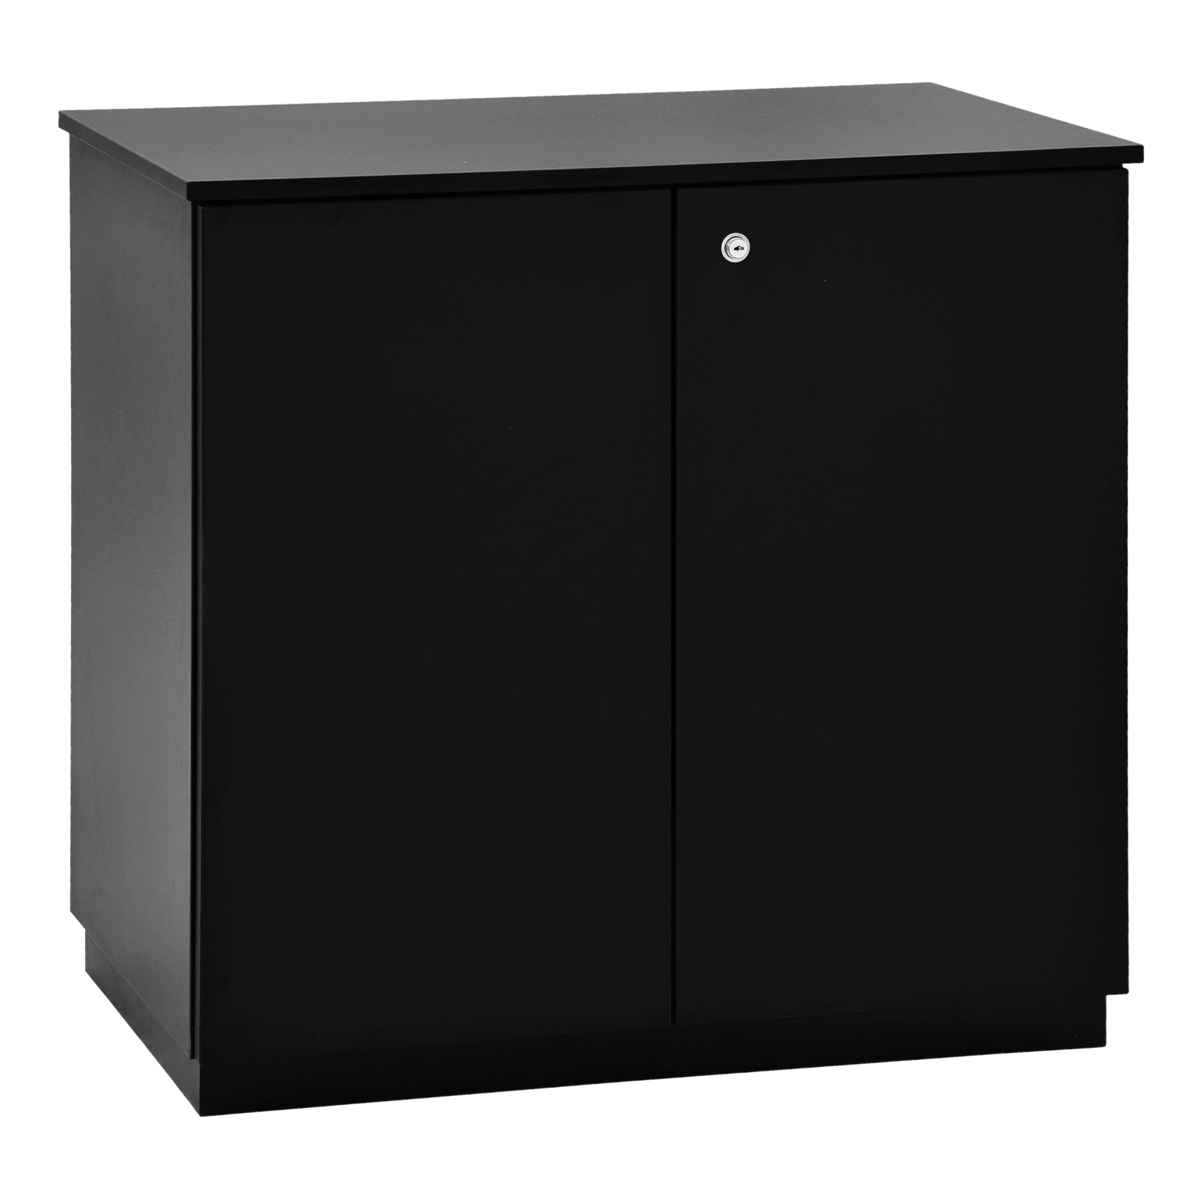 sideboard schwarz dlse mietm bel. Black Bedroom Furniture Sets. Home Design Ideas